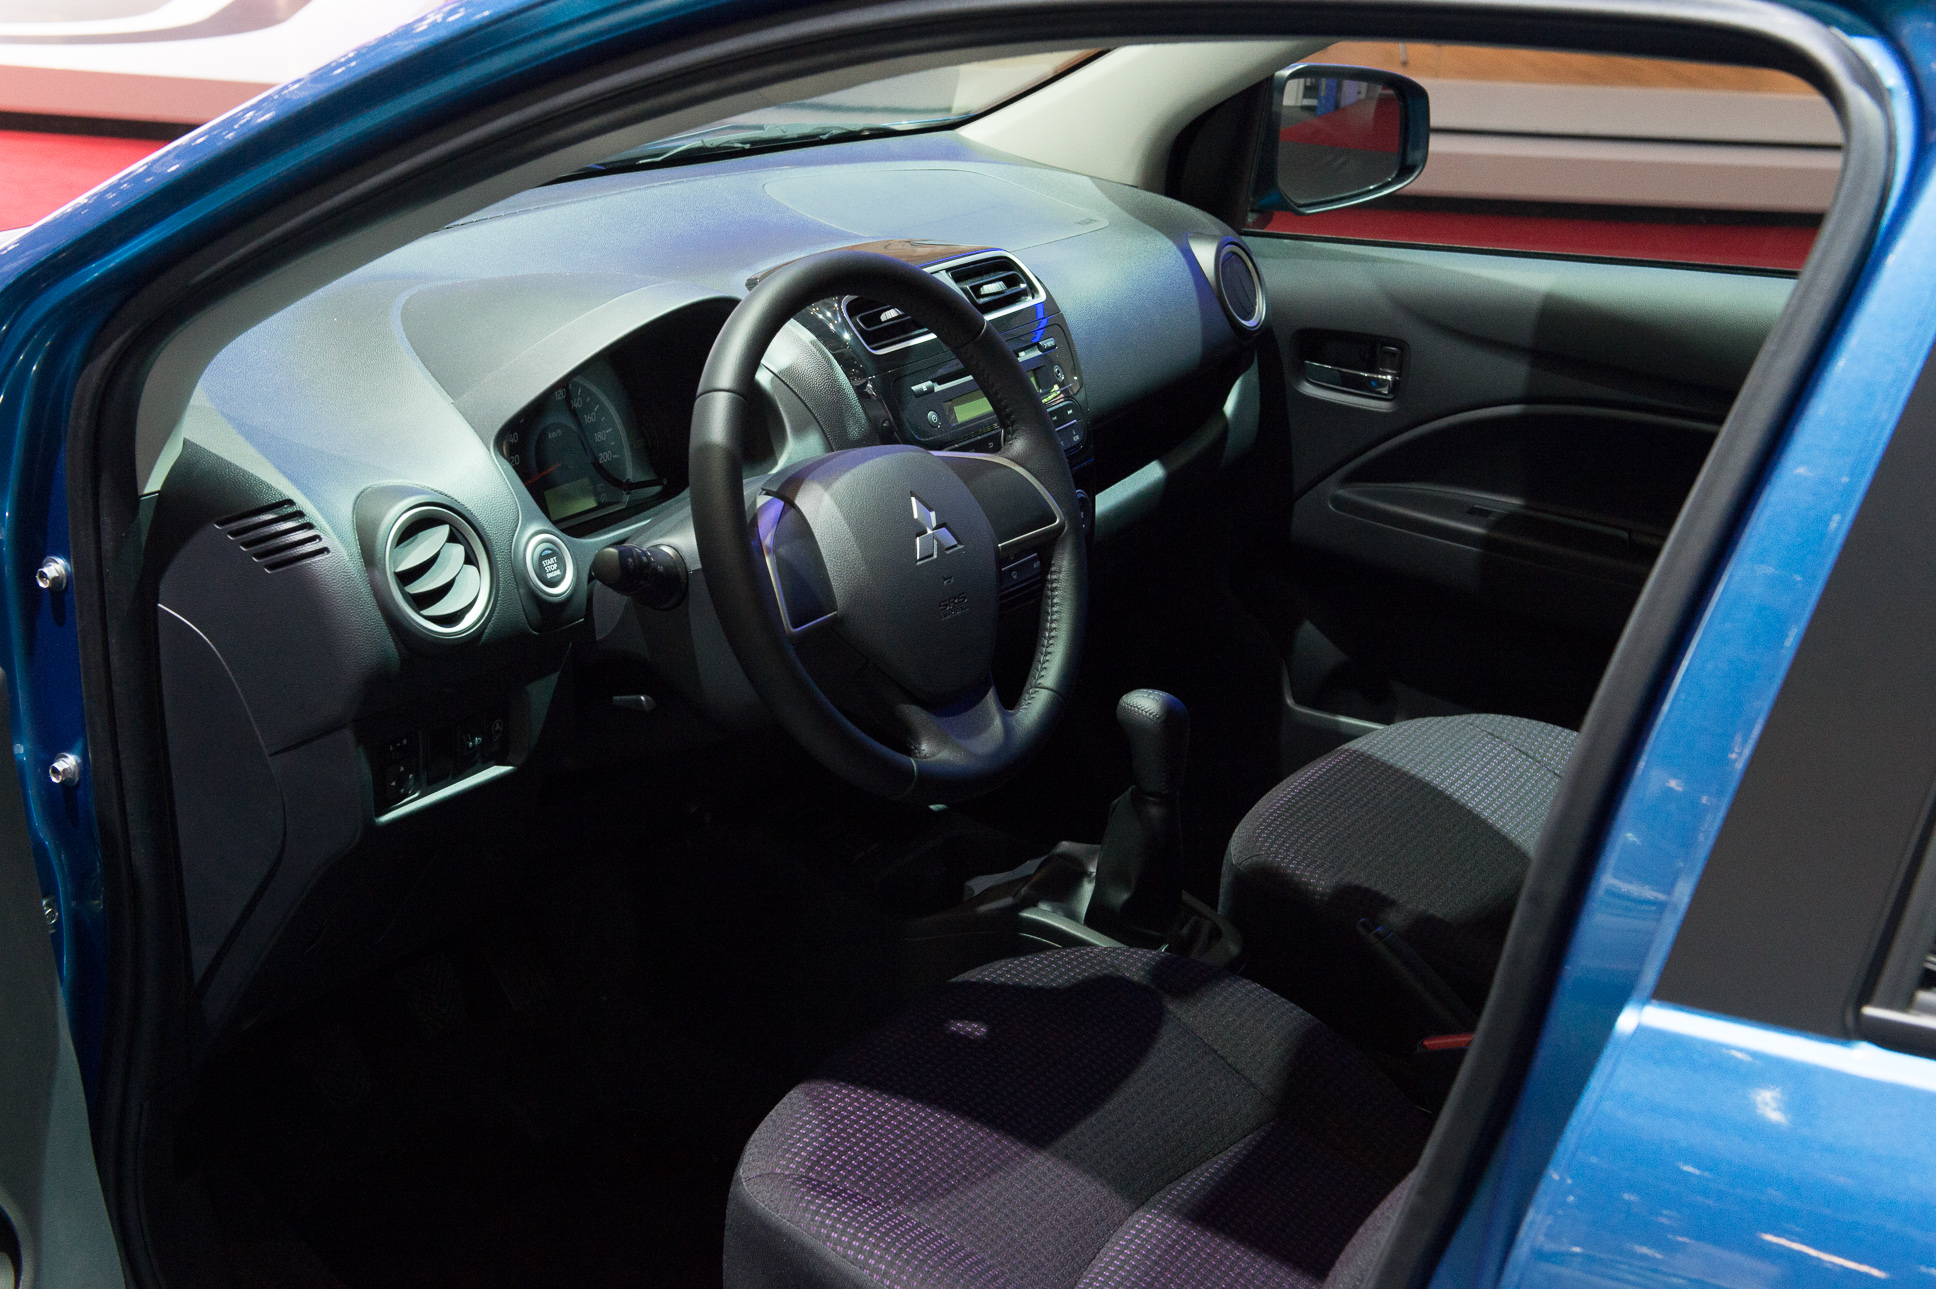 2013-mitsubishi-space-star-blau-genf-auto-salon-07